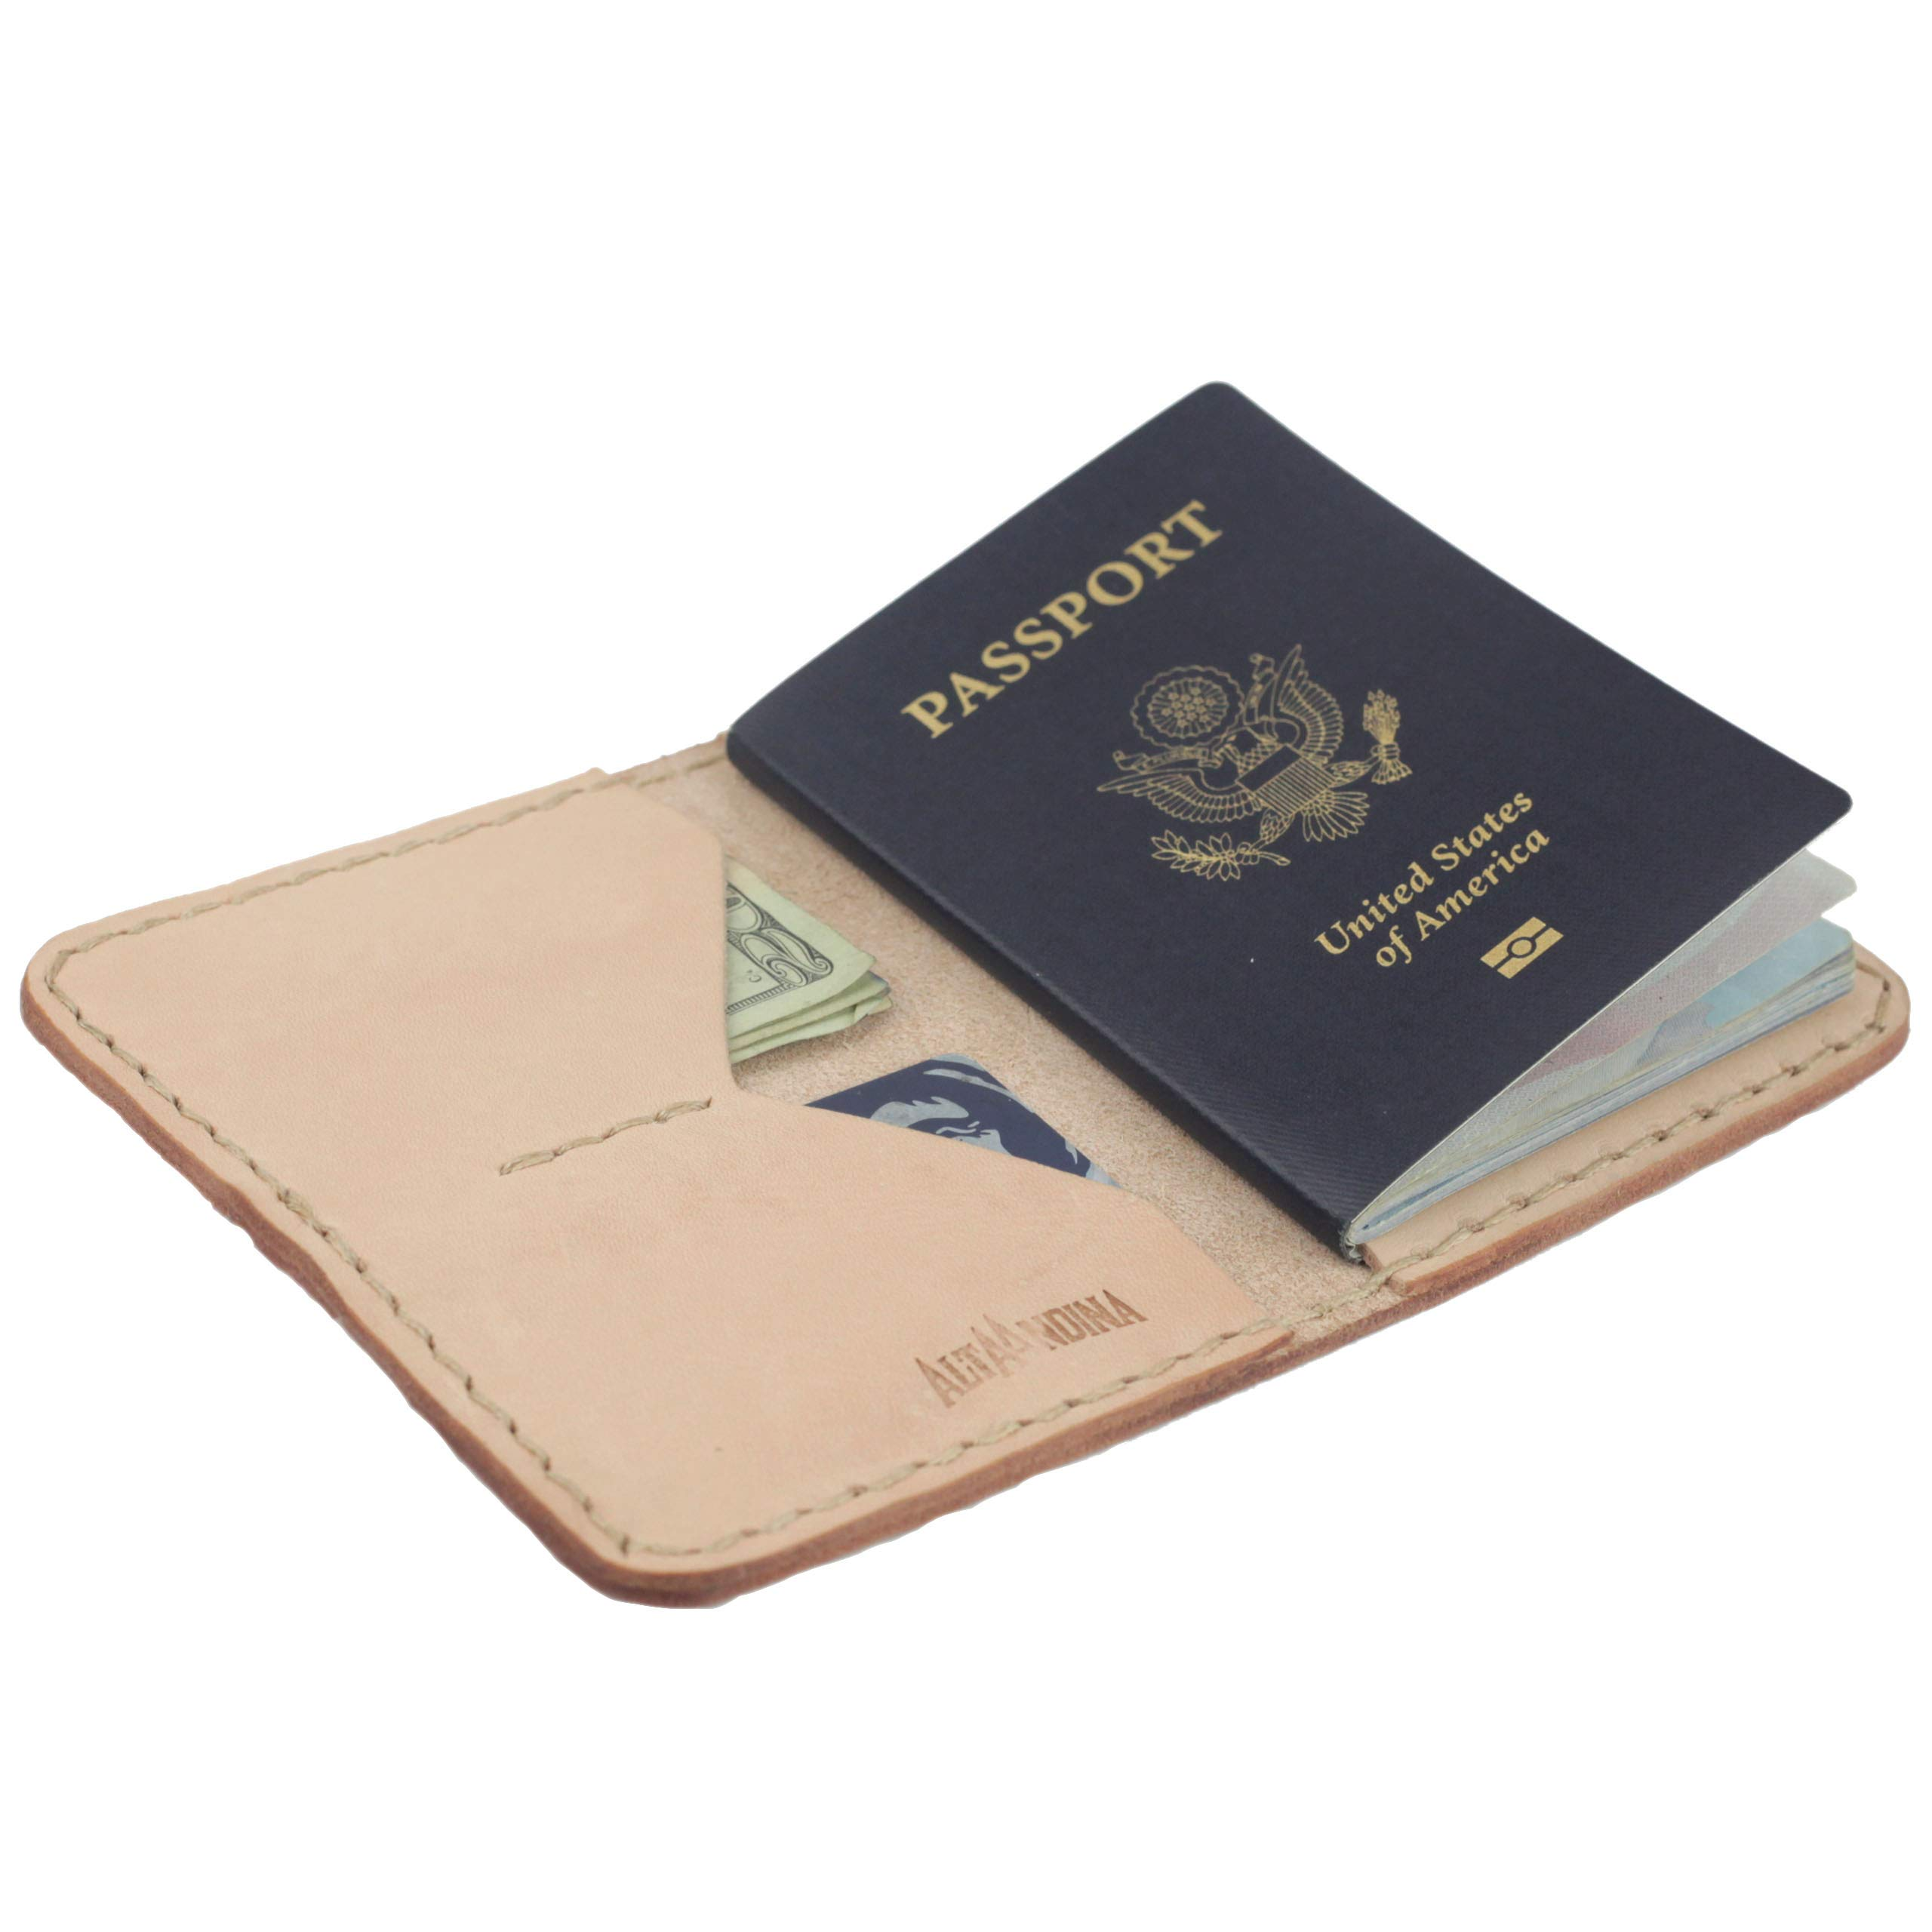 Alta Andina Leather Passport Holder | Travel Wallet w/Card Holder Slots | Full Grain, Vegetable Tanned Leather (Beige - Natural)